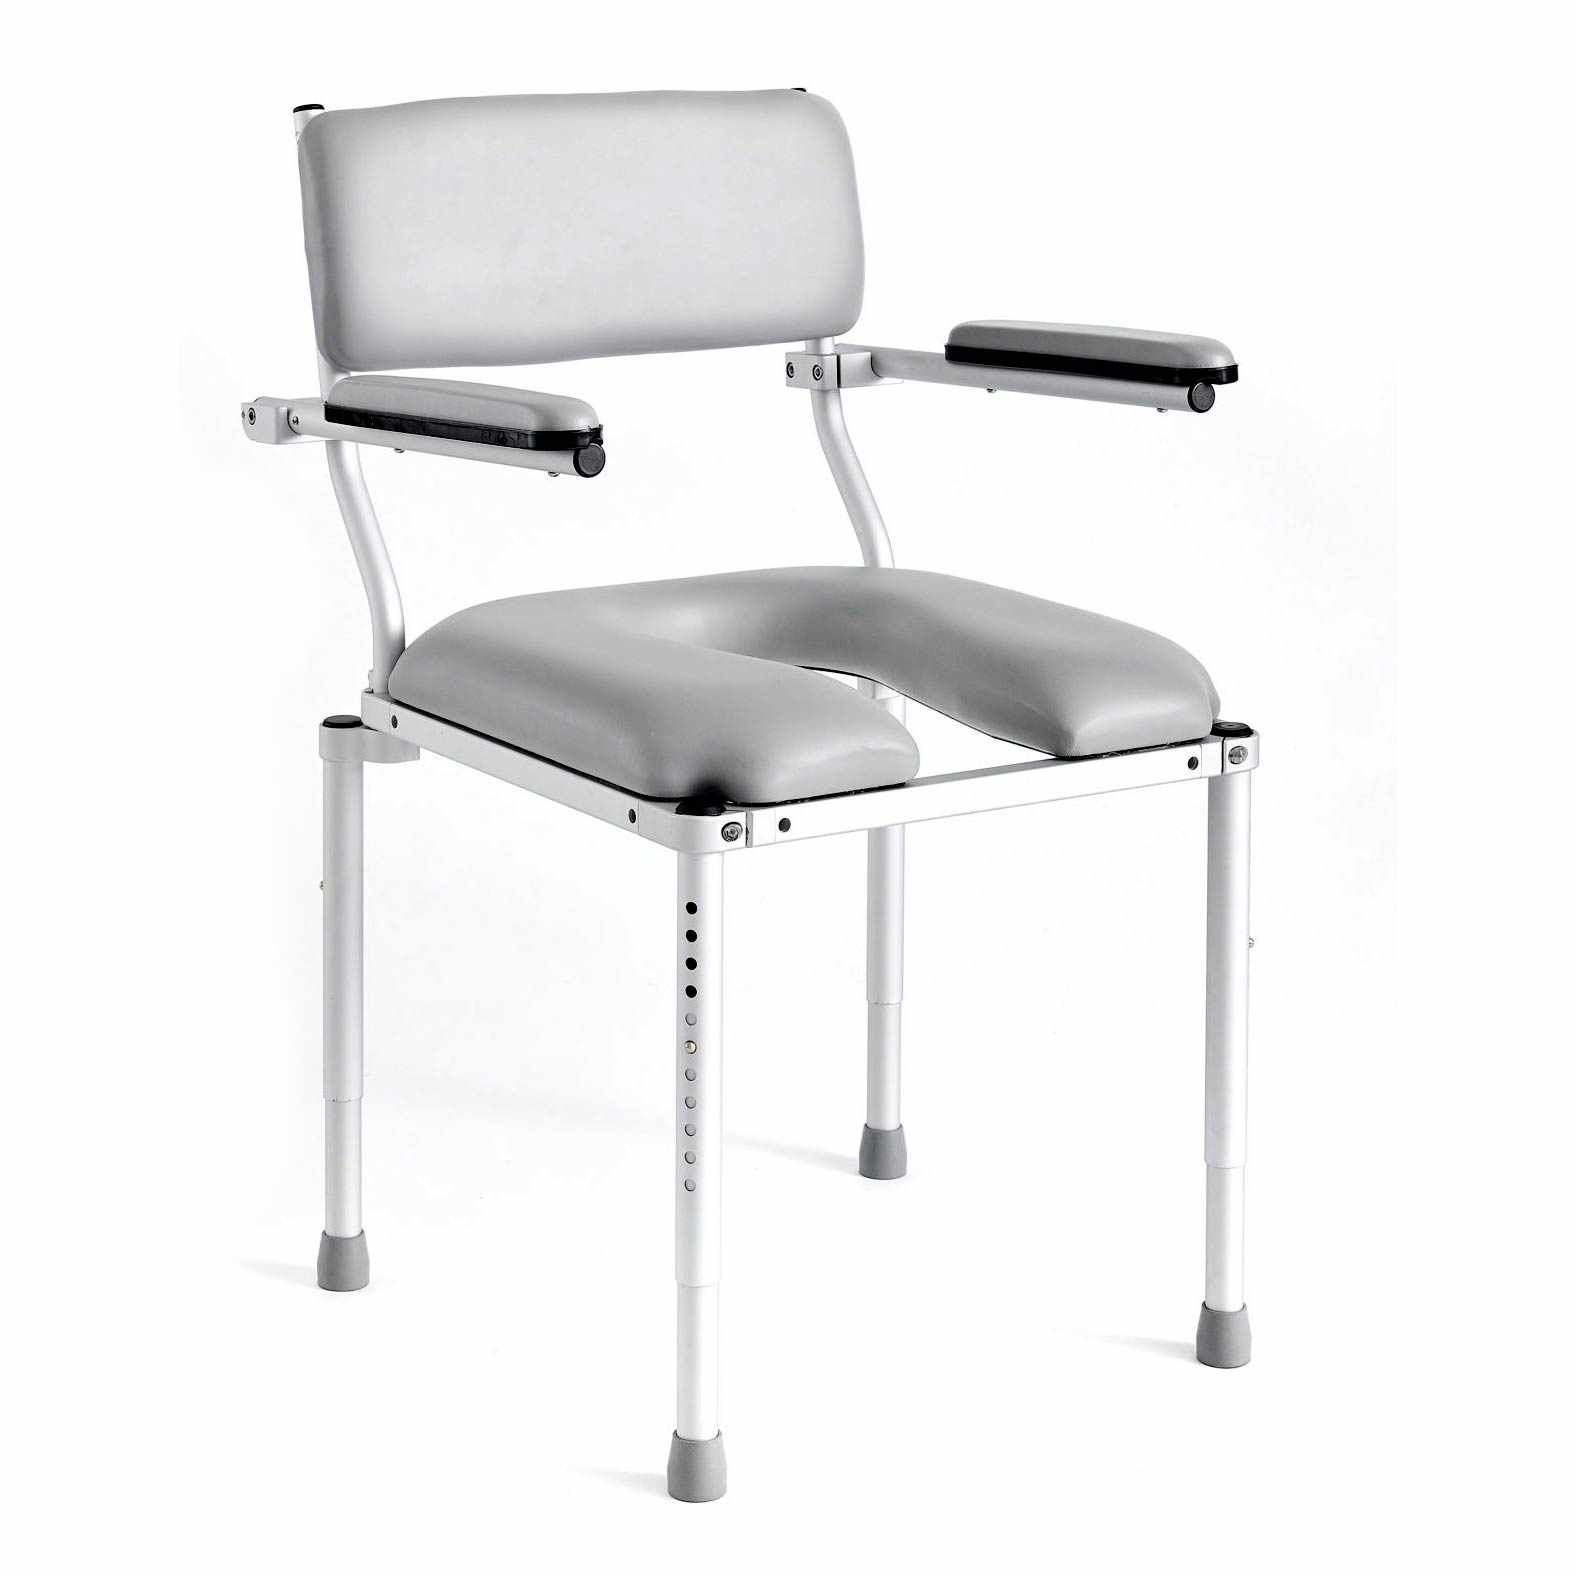 Nuprodx Multichair 3200 Tub And Toilet Chair   Medicaleshop